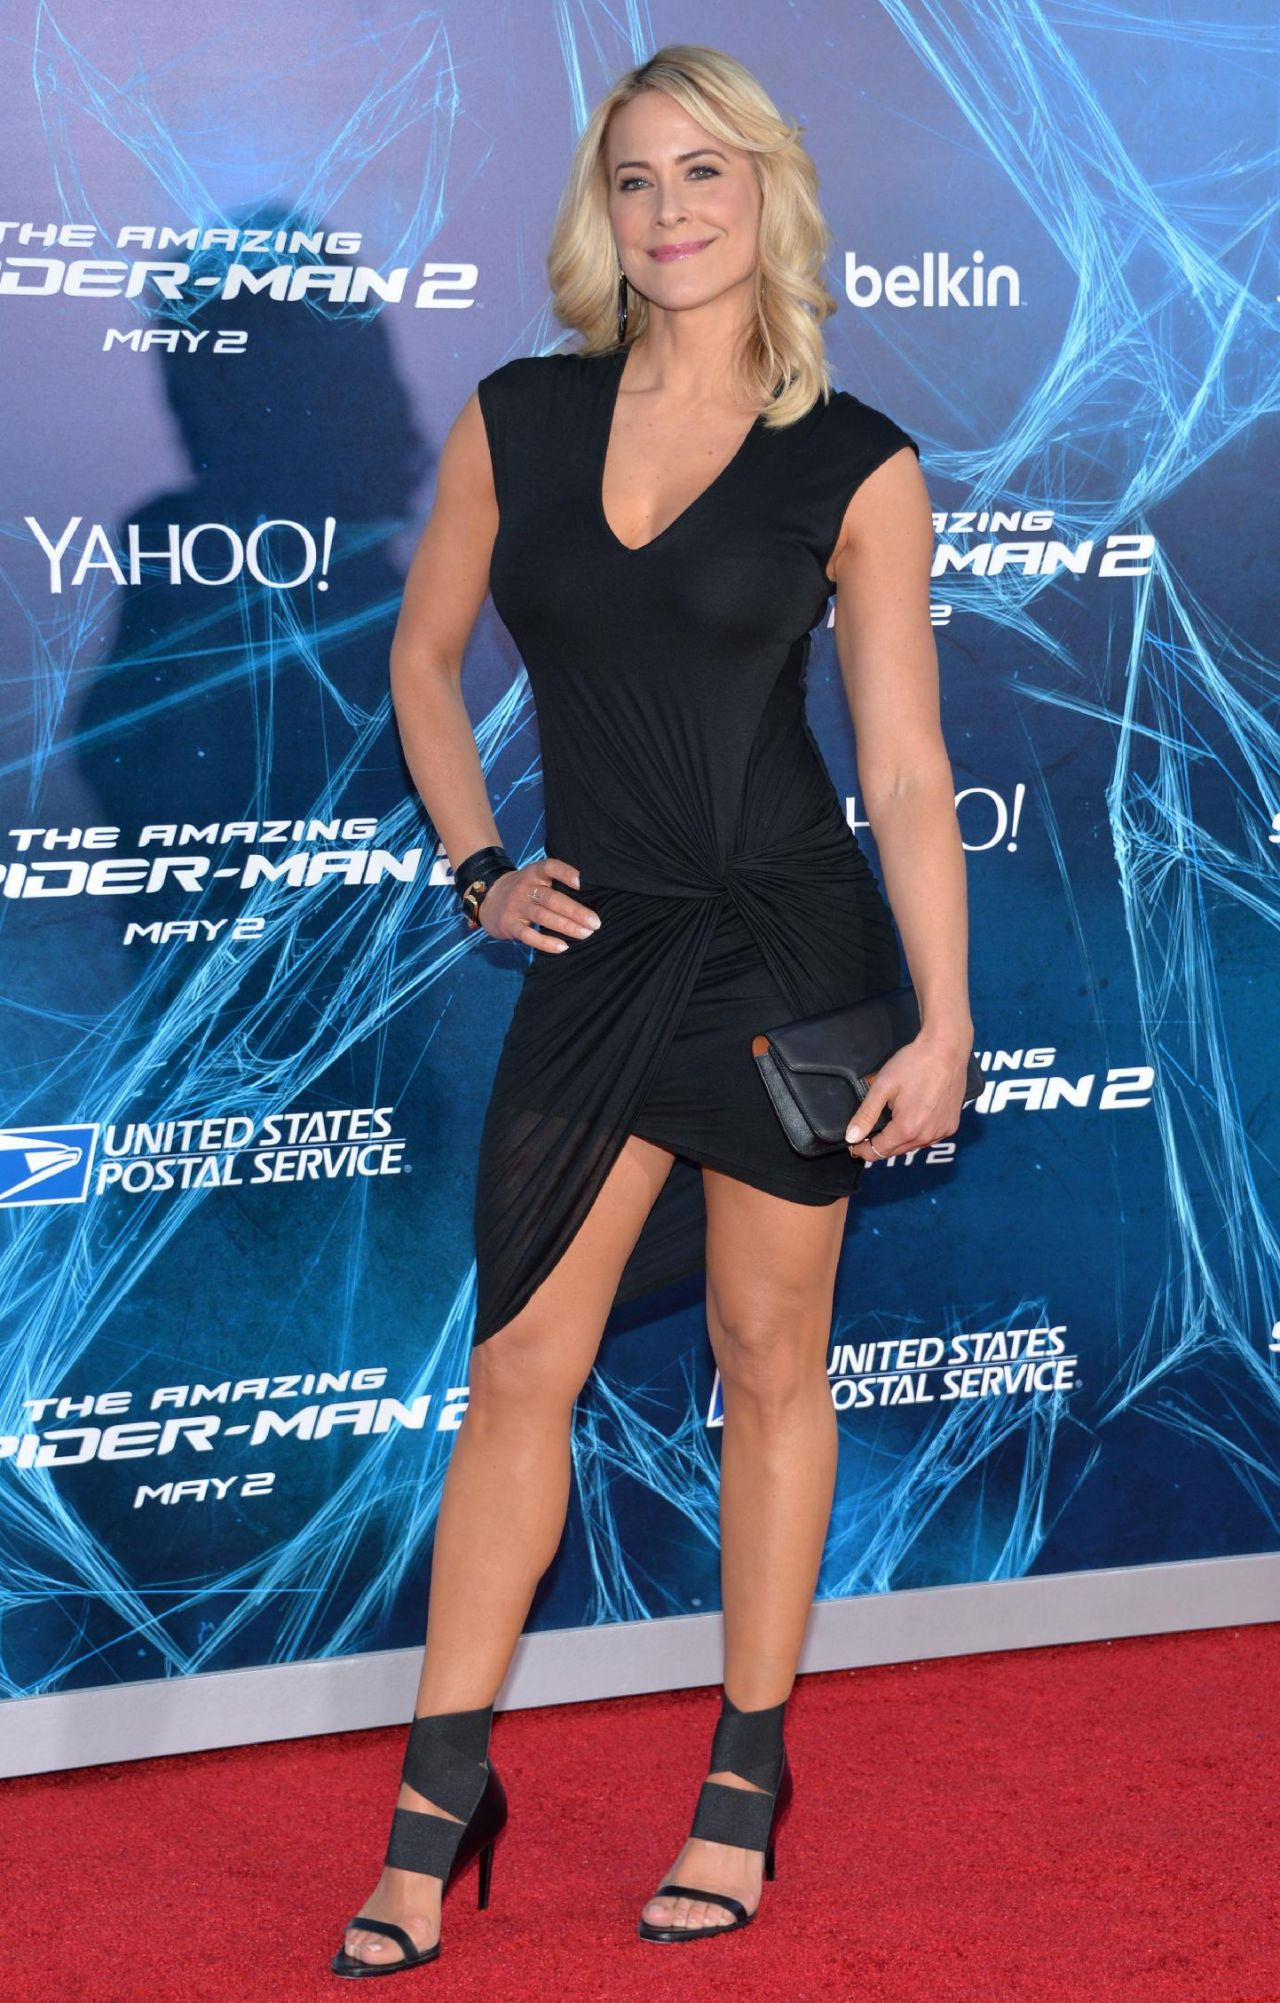 THE AMAZING SPIDER-MAN 2 Premiere in New york City - Brittany Daniel